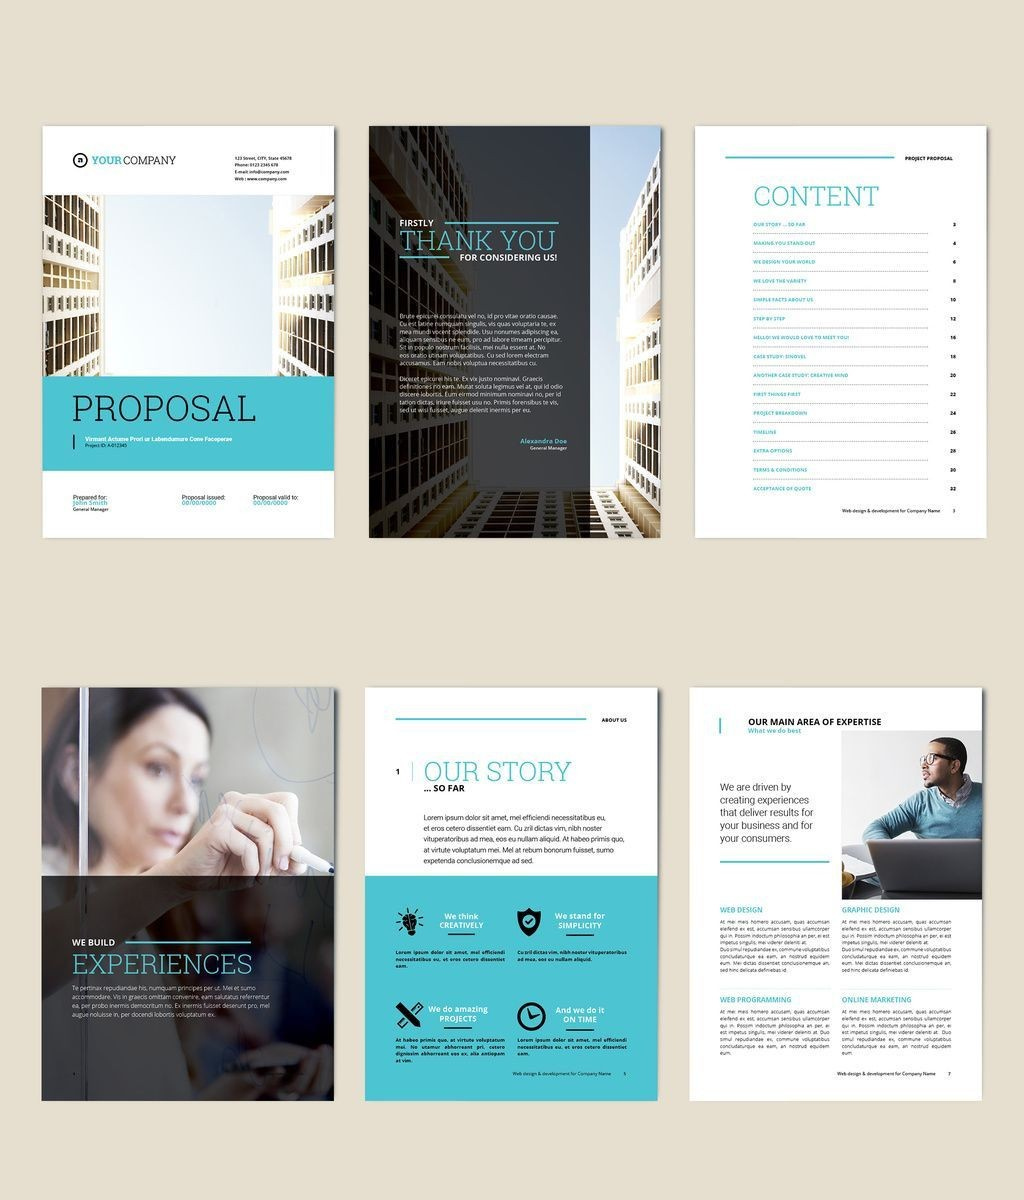 001 Staggering Free Adobe Indesign Annual Report Template Highest Quality Large